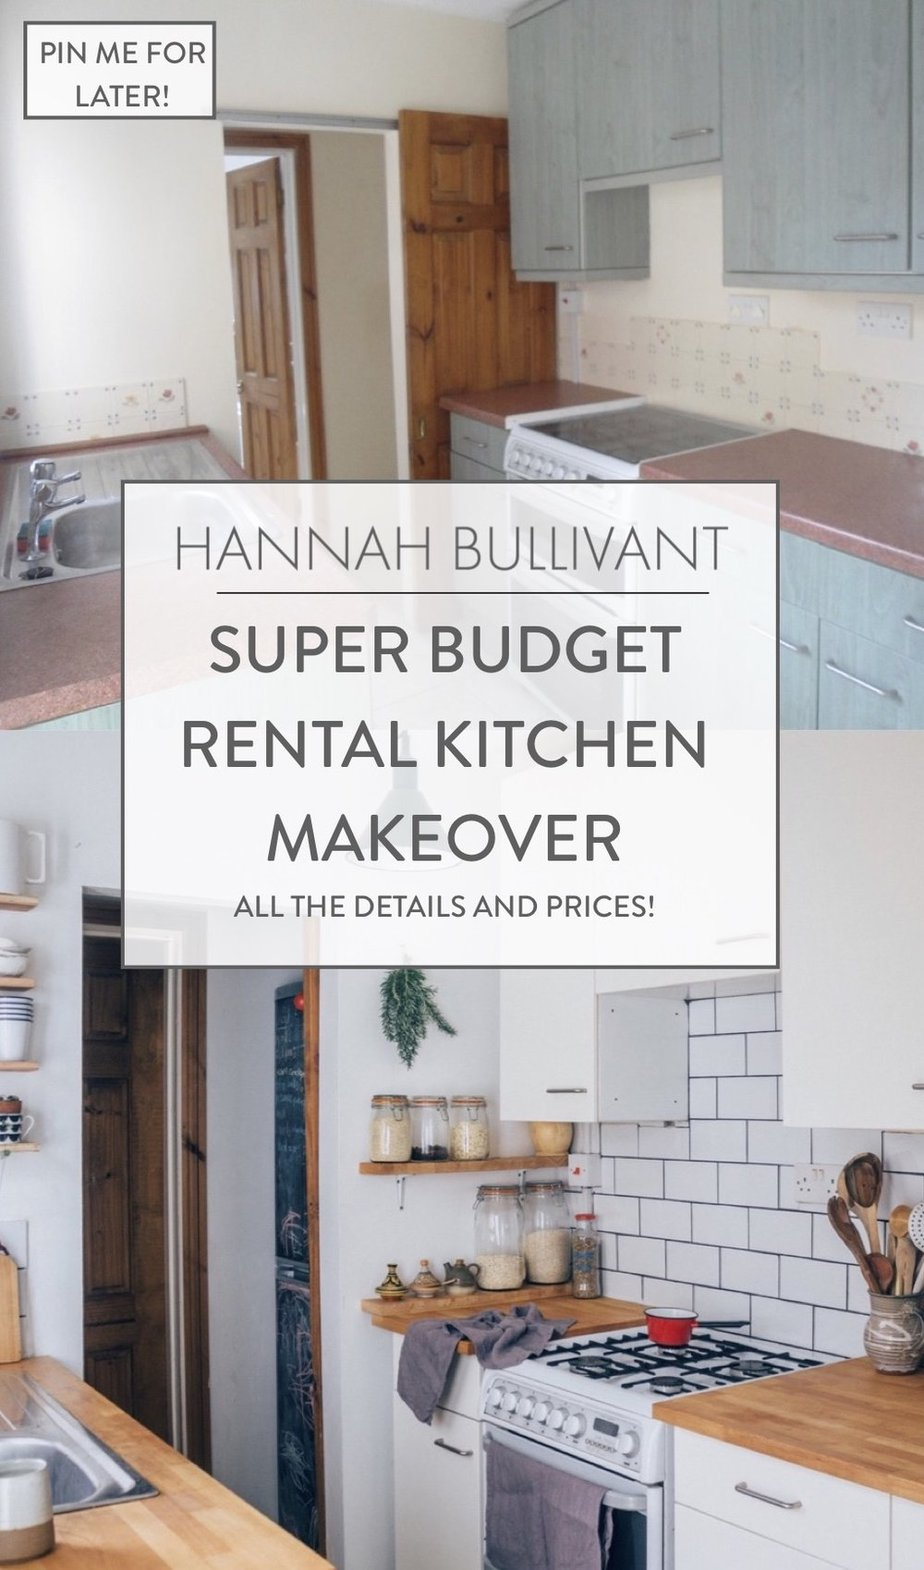 10. Try this SUPER BUDGET RENTAL KITCHEN MAKEOVER by simphome.com